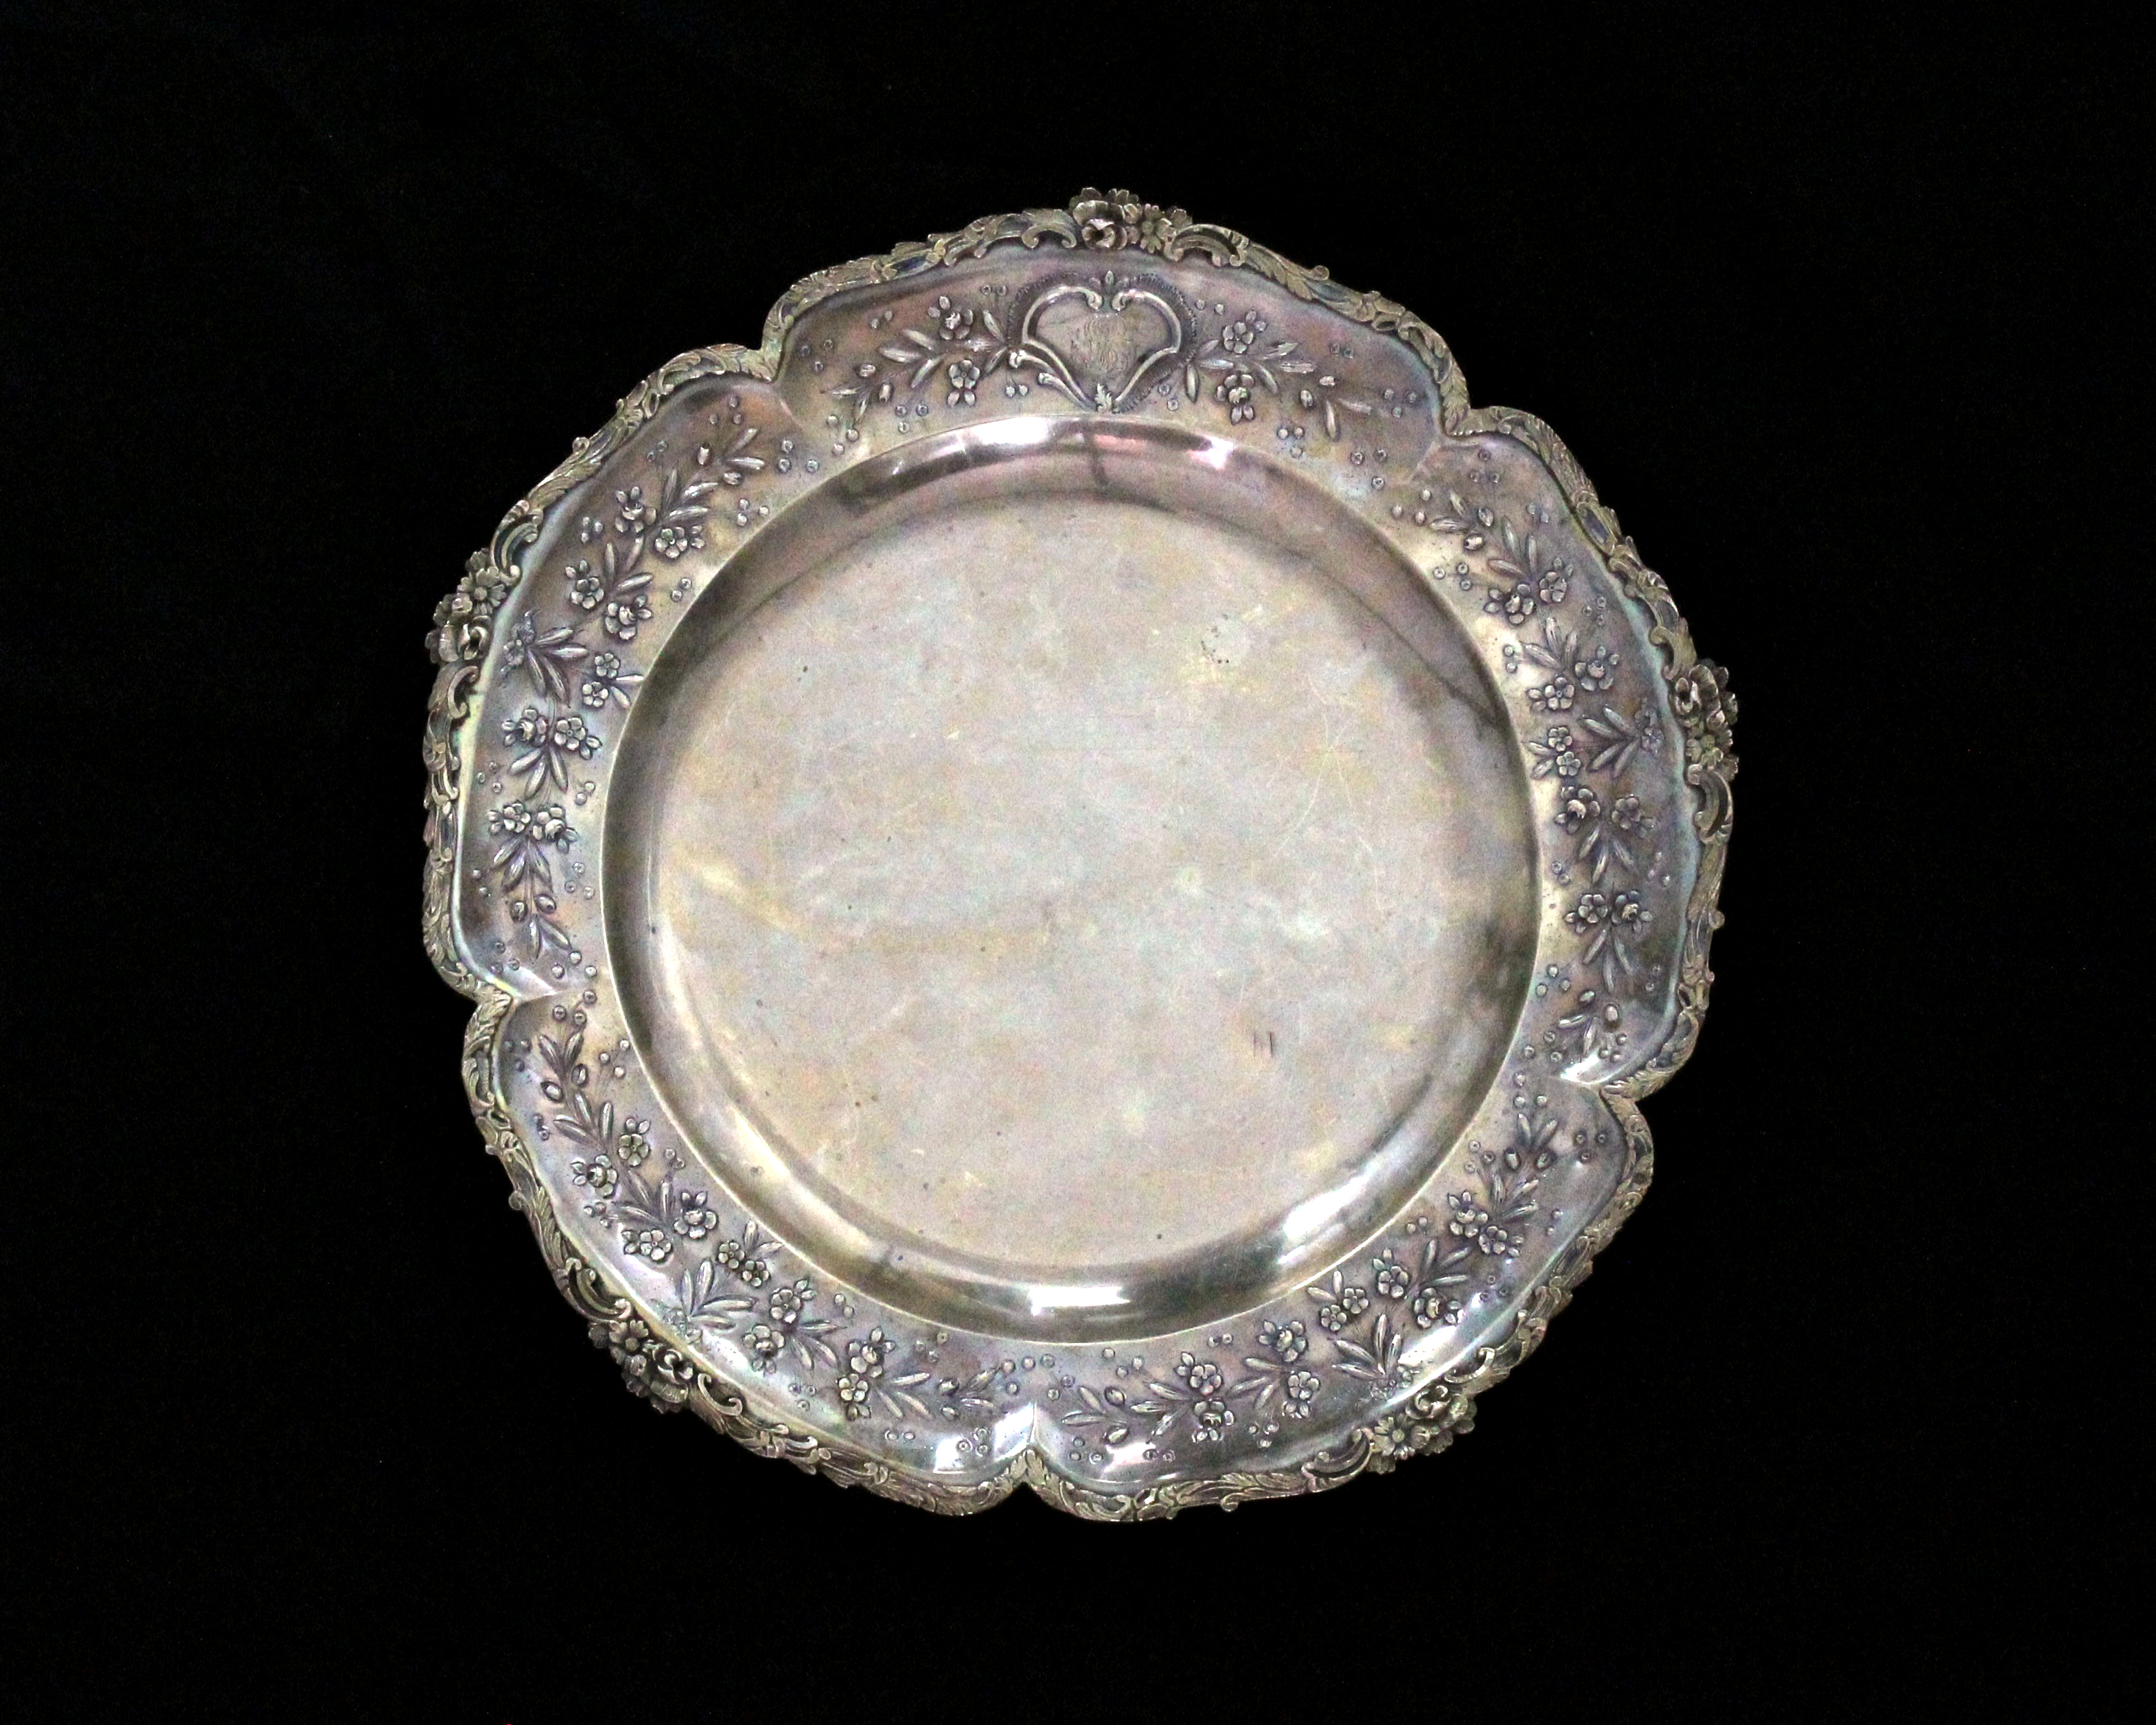 Los 44 - An antique French Silver meat / serving dish circa 1890 of circular form with a raised stylised